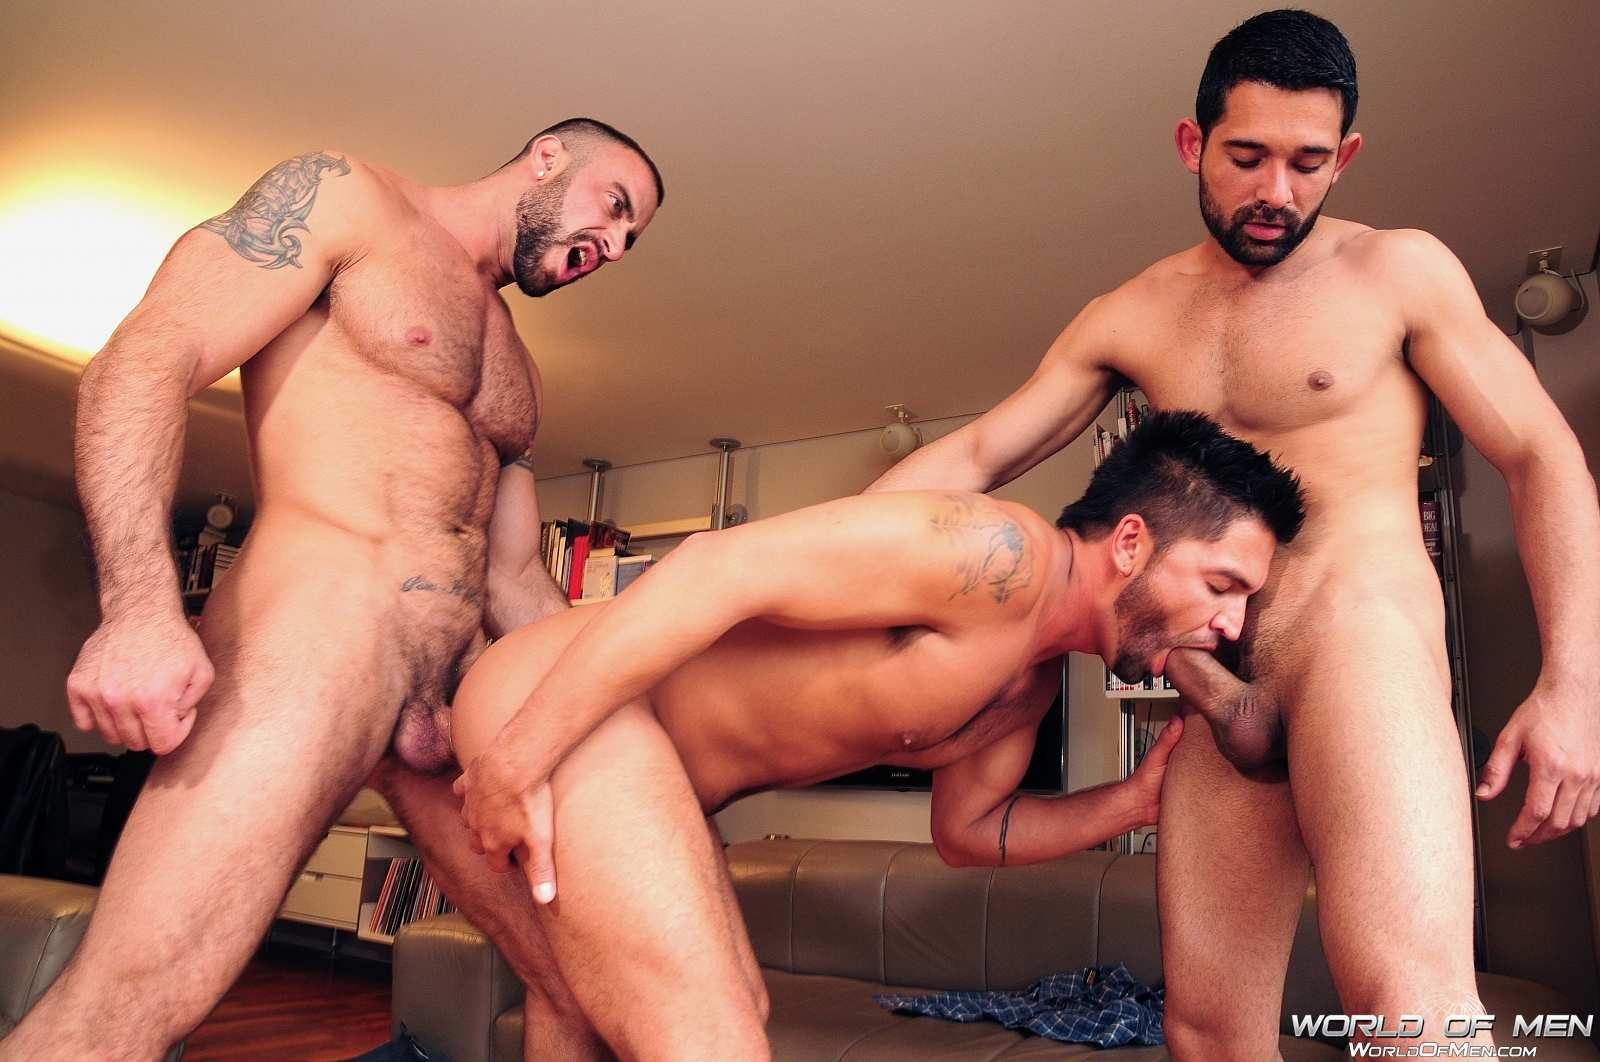 Gay cock threesome